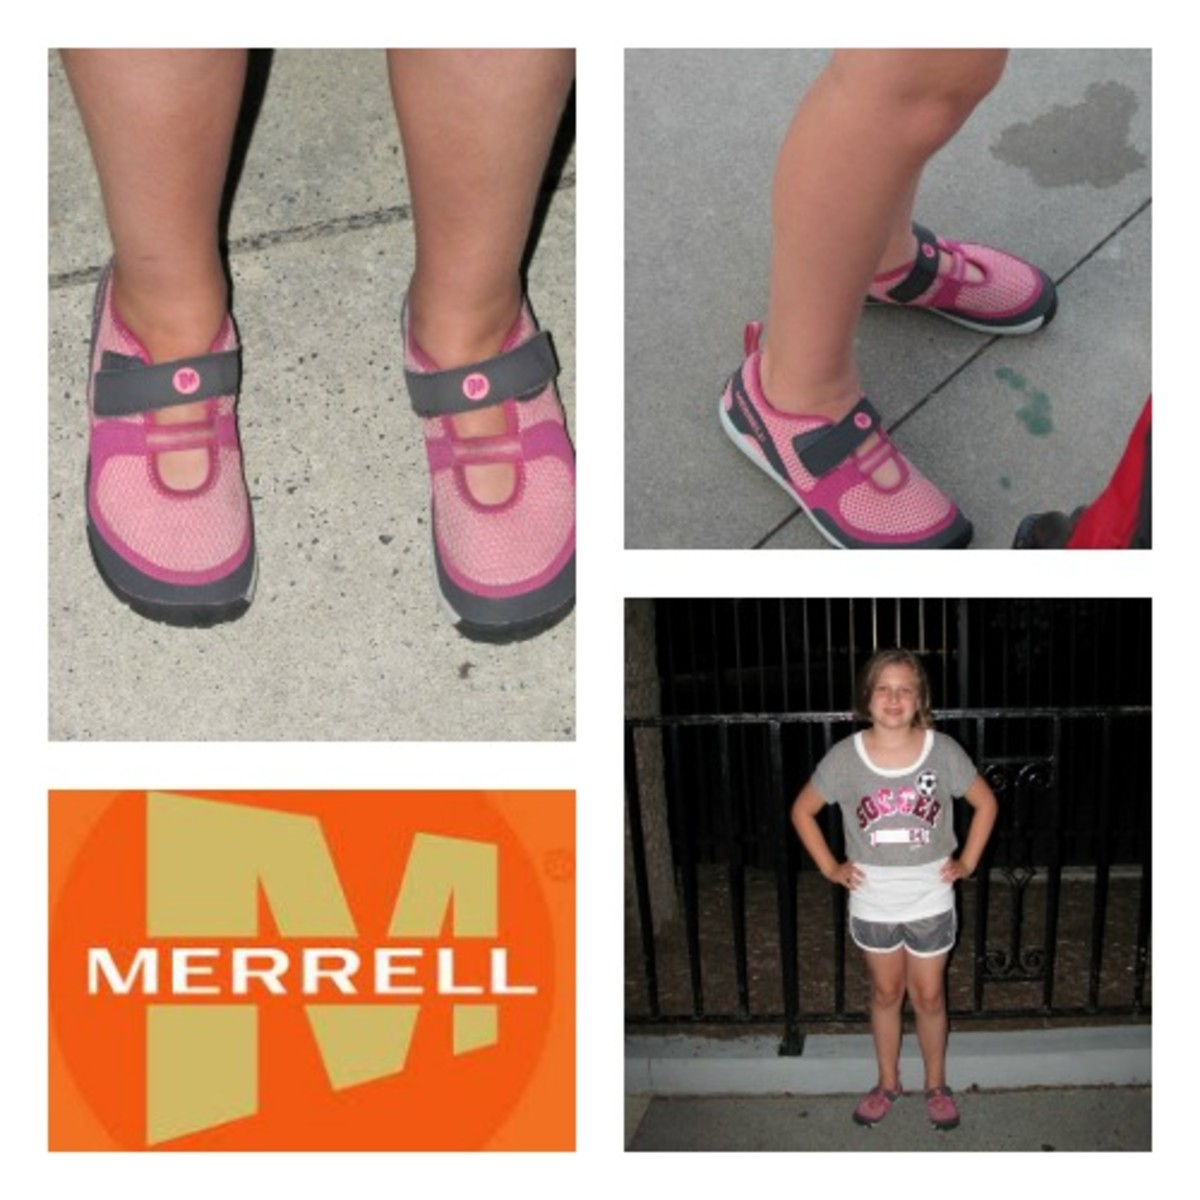 Merrell Collage